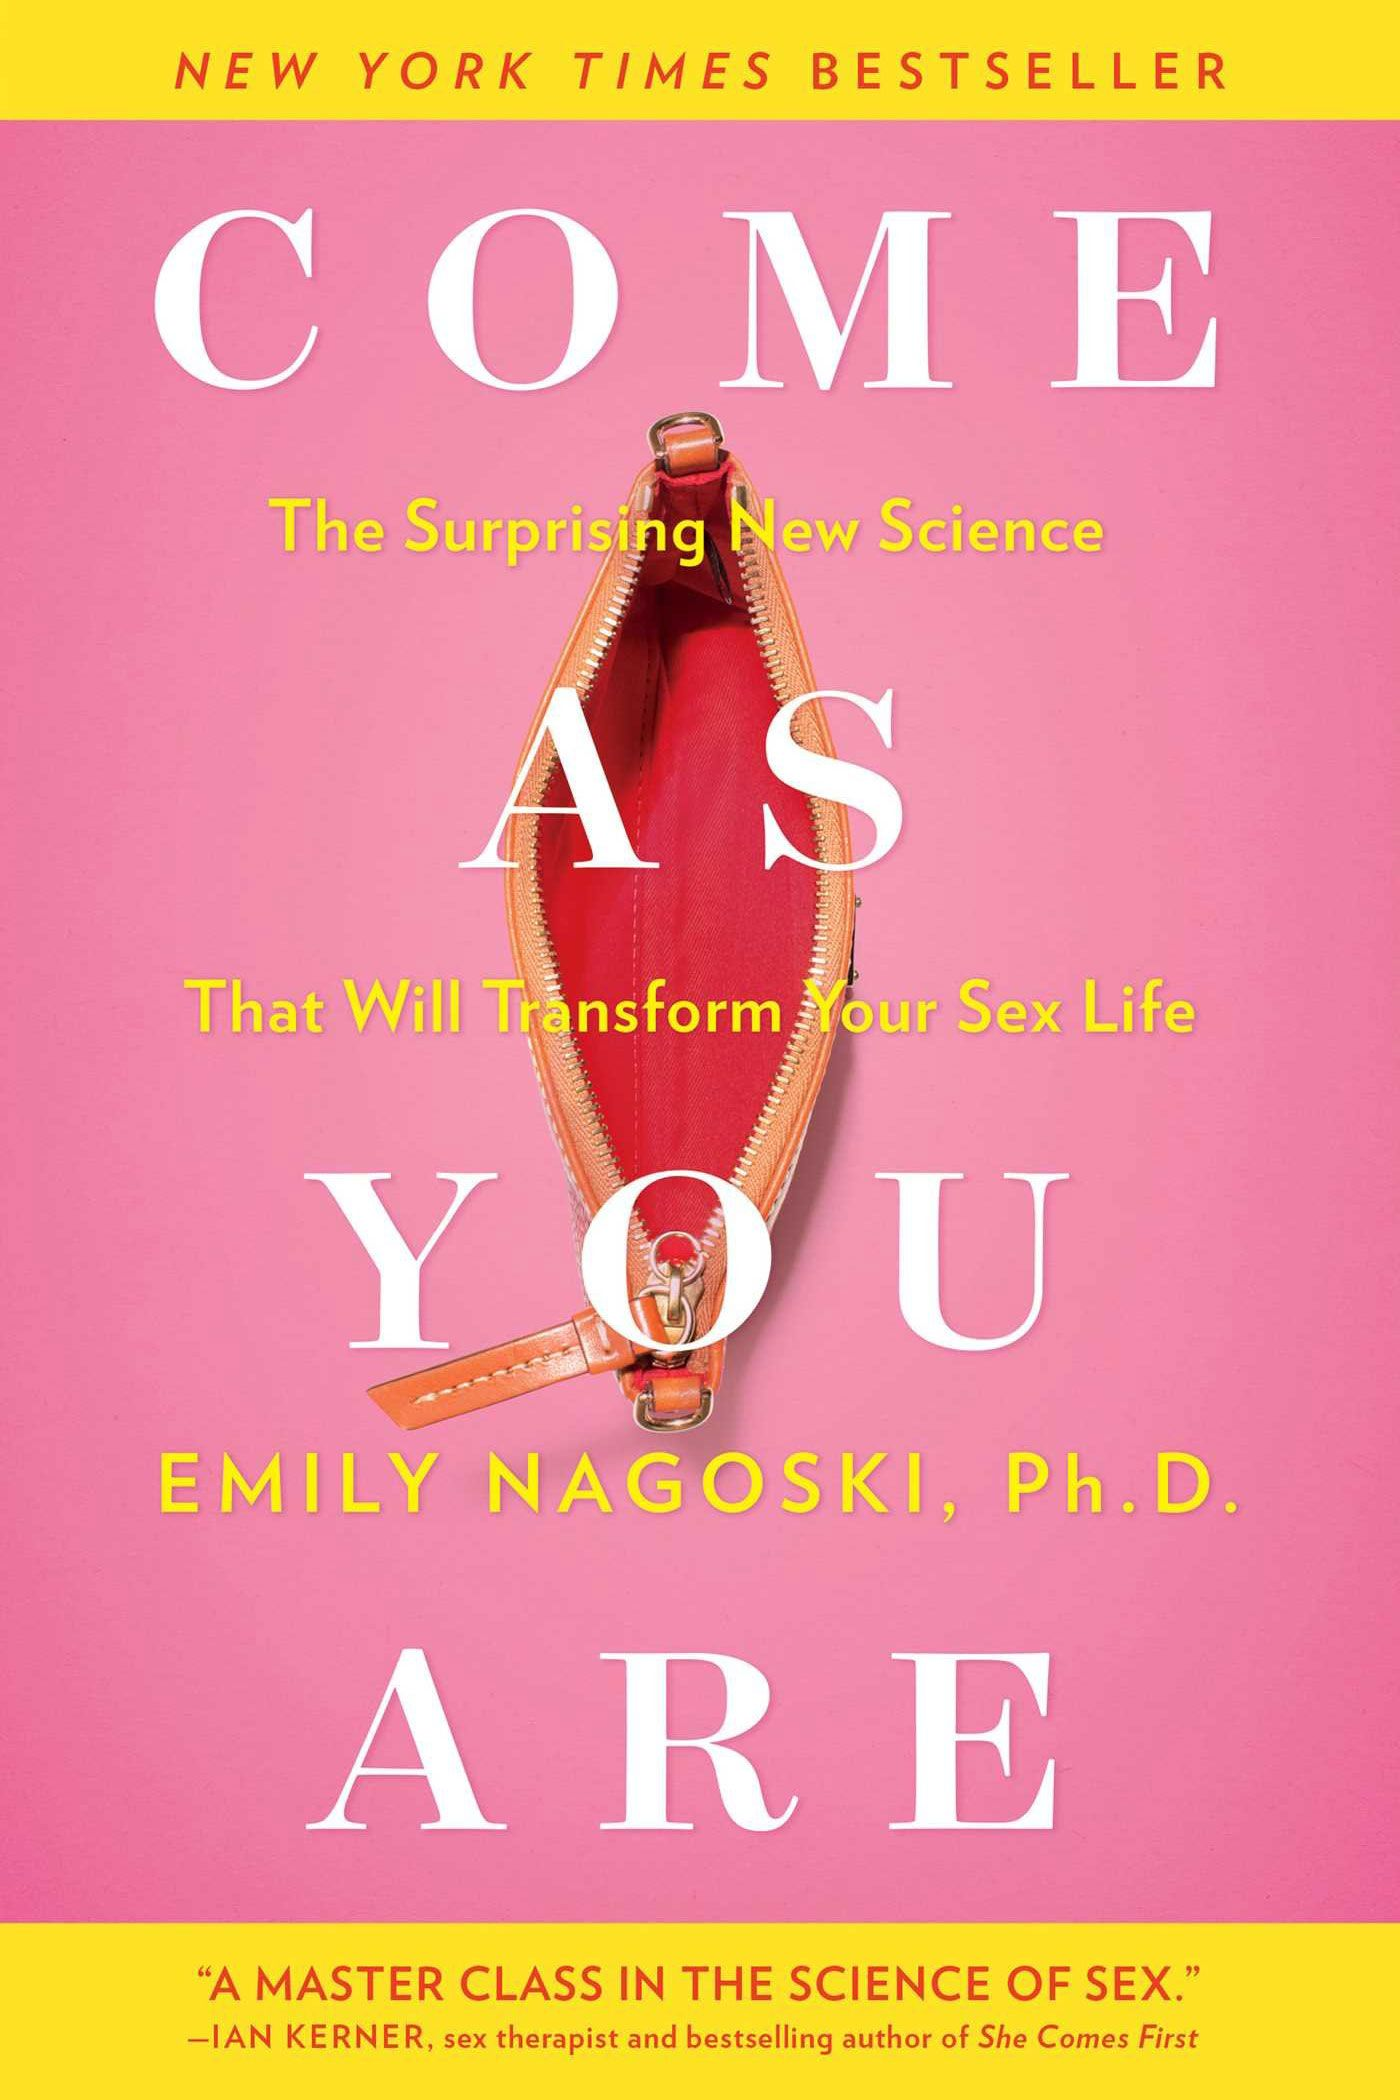 "<p>""Emily Nagoski has been an inspiration in the sex industry. She is witty&nbsp&#x3B;and to the point with her work in&nbsp&#x3B;supporting women have the best sex of their lives.&nbsp&#x3B;This book is an easy read, but has the best down-to-earth science and fun facts that you never knew you needed to know.""&nbsp&#x3B; <em data-redactor-tag=""em"" data-verified=""redactor"">—<a href=""http://www.drcarlen.com/"" data-tracking-id=""recirc-text-link"" target=""_blank"">Carlen Costa</a>, sexologist and relationship psychotherapist  </em><span class=""redactor-invisible-space"" data-verified=""redactor"" data-redactor-tag=""span"" data-redactor-class=""redactor-invisible-space""><em data-redactor-tag=""em"" data-verified=""redactor""></em></span></p><p><a href=""https://www.amazon.com/Come-You-Are-Surprising-Transform-ebook/dp/B00LD1ORBI/ref=sr_1_1?s=books&amp&#x3B;ie=UTF8&amp&#x3B;qid=1483979756&amp&#x3B;sr=1-1&amp&#x3B;keywords=Come+as+Your+Are%3A+The+Surprising+New+Science+that+Will+Transform+Your+Sex+Life+by+Emily+Nagoski"" target=""_blank"" data-tracking-id=""recirc-text-link"">BUY NOW</a></p>"